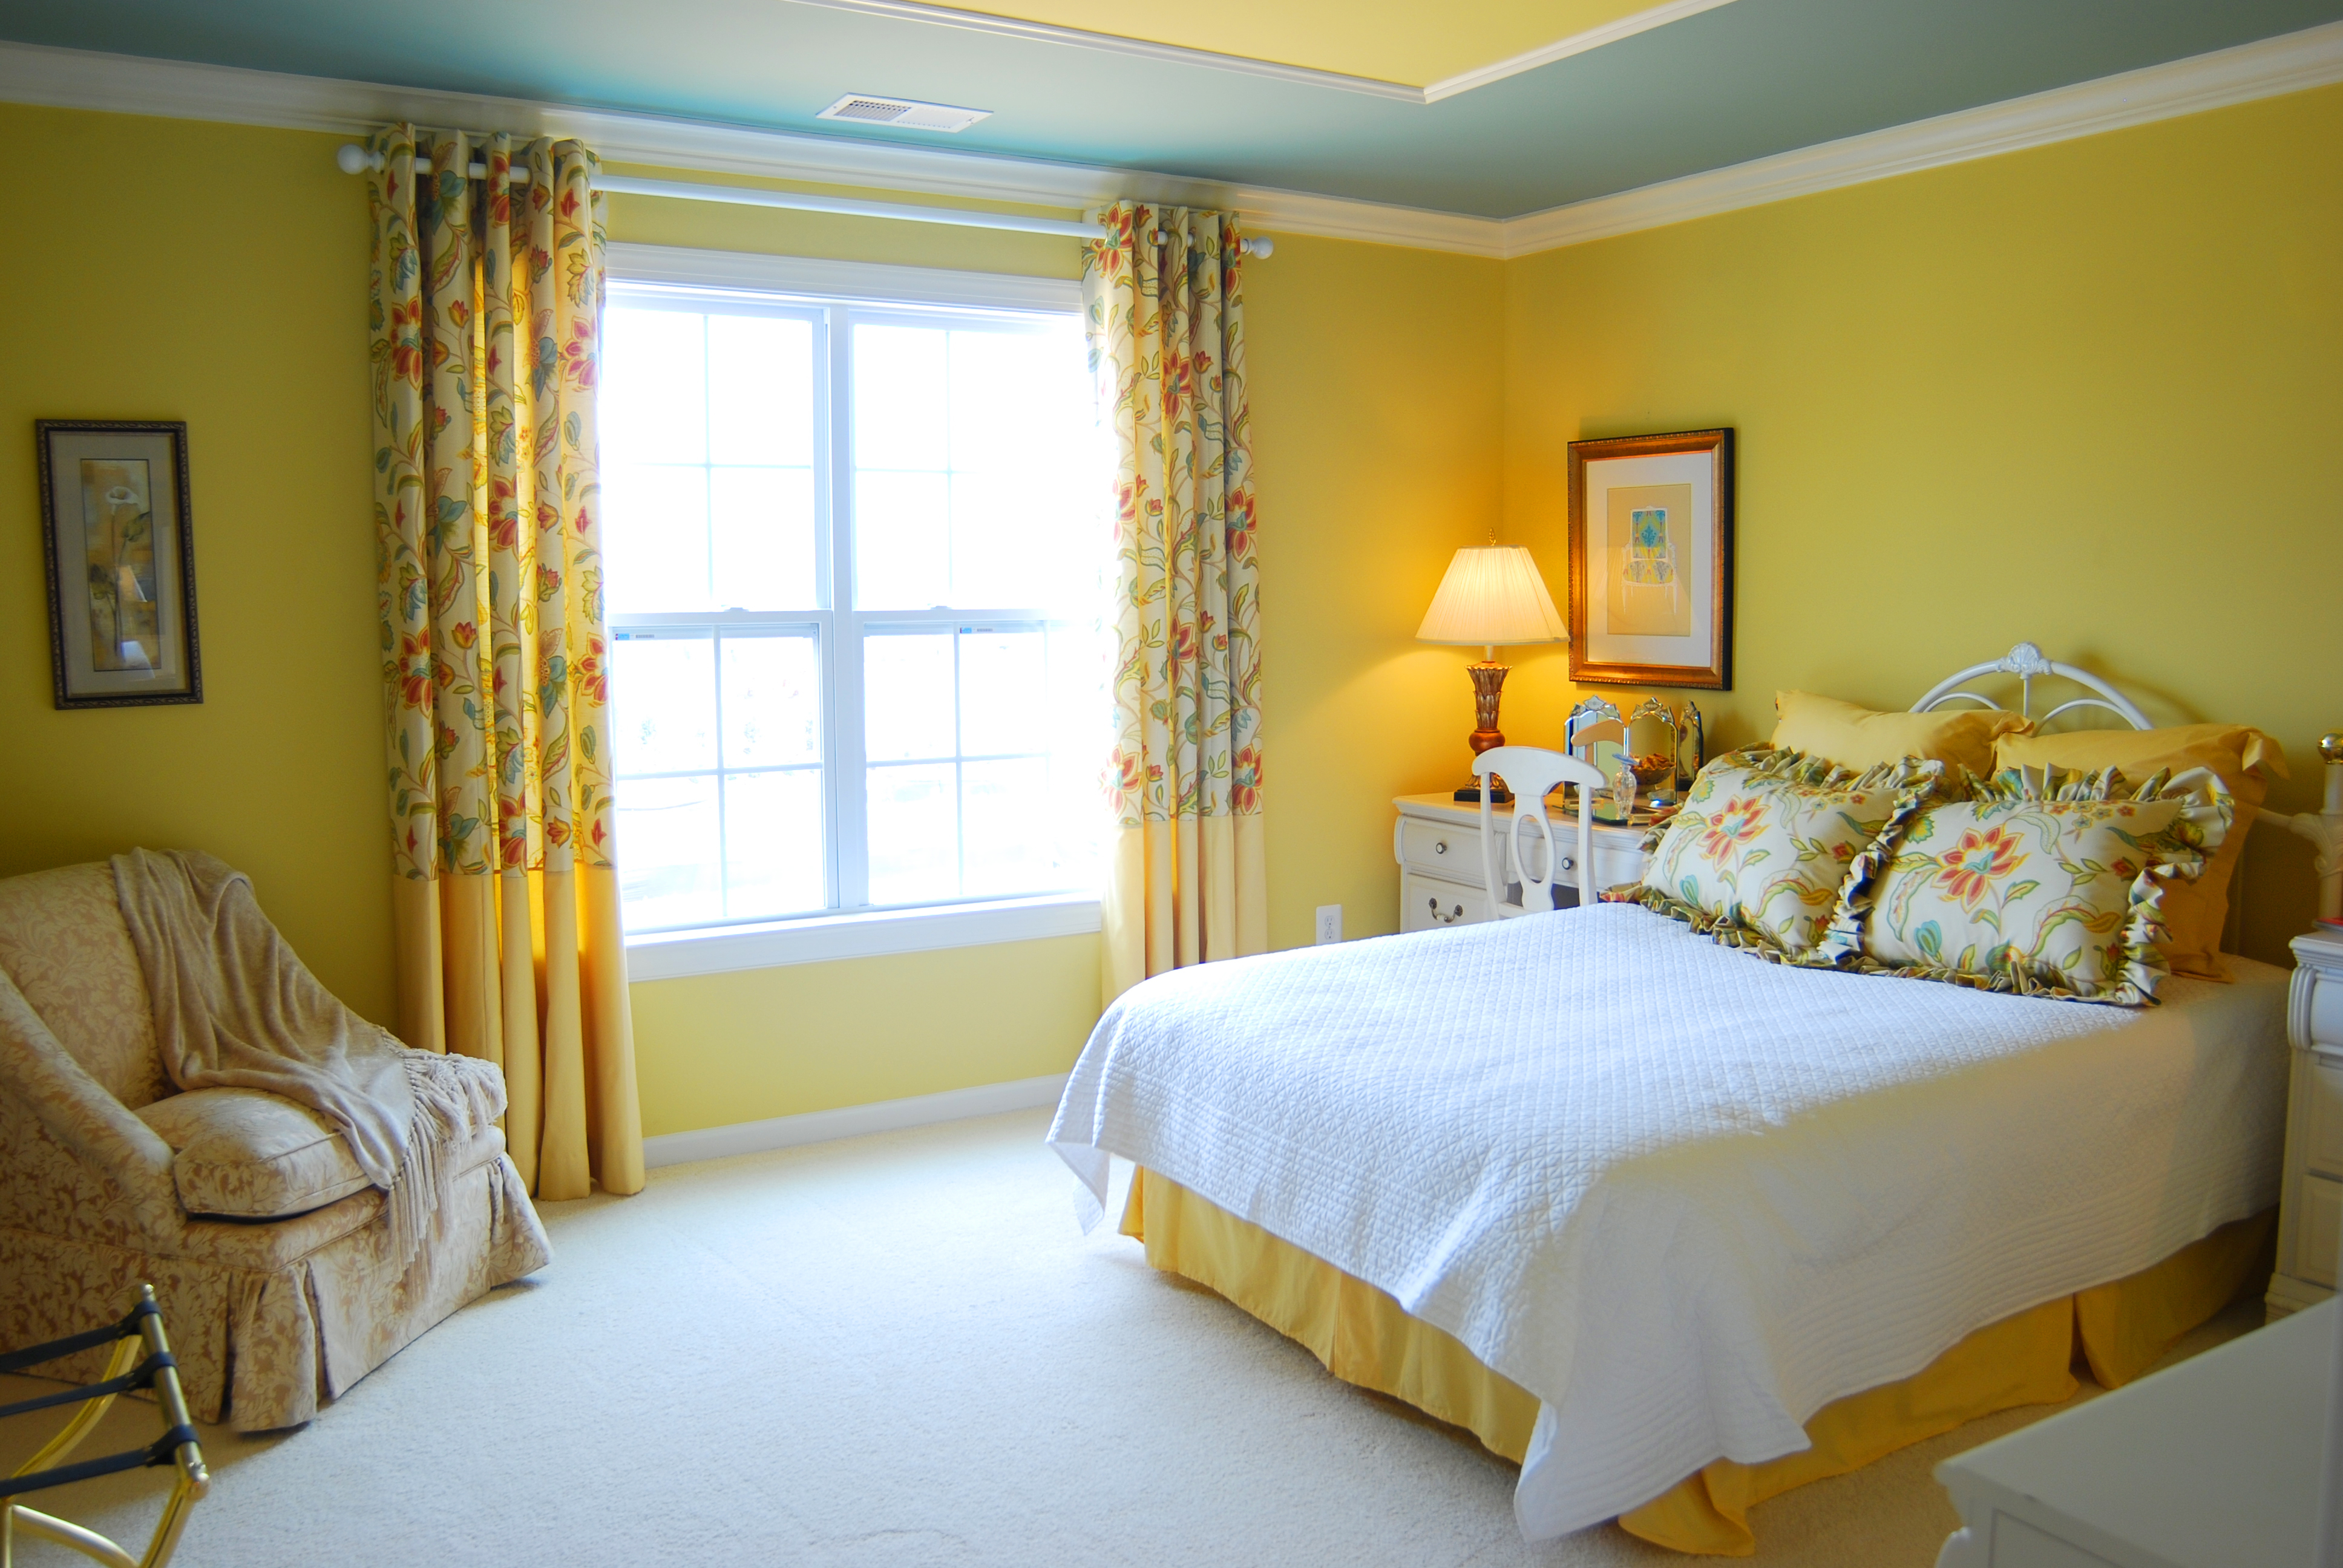 Bedroom Color For Small Room Yellow Bedroom Colors Bedroom Design